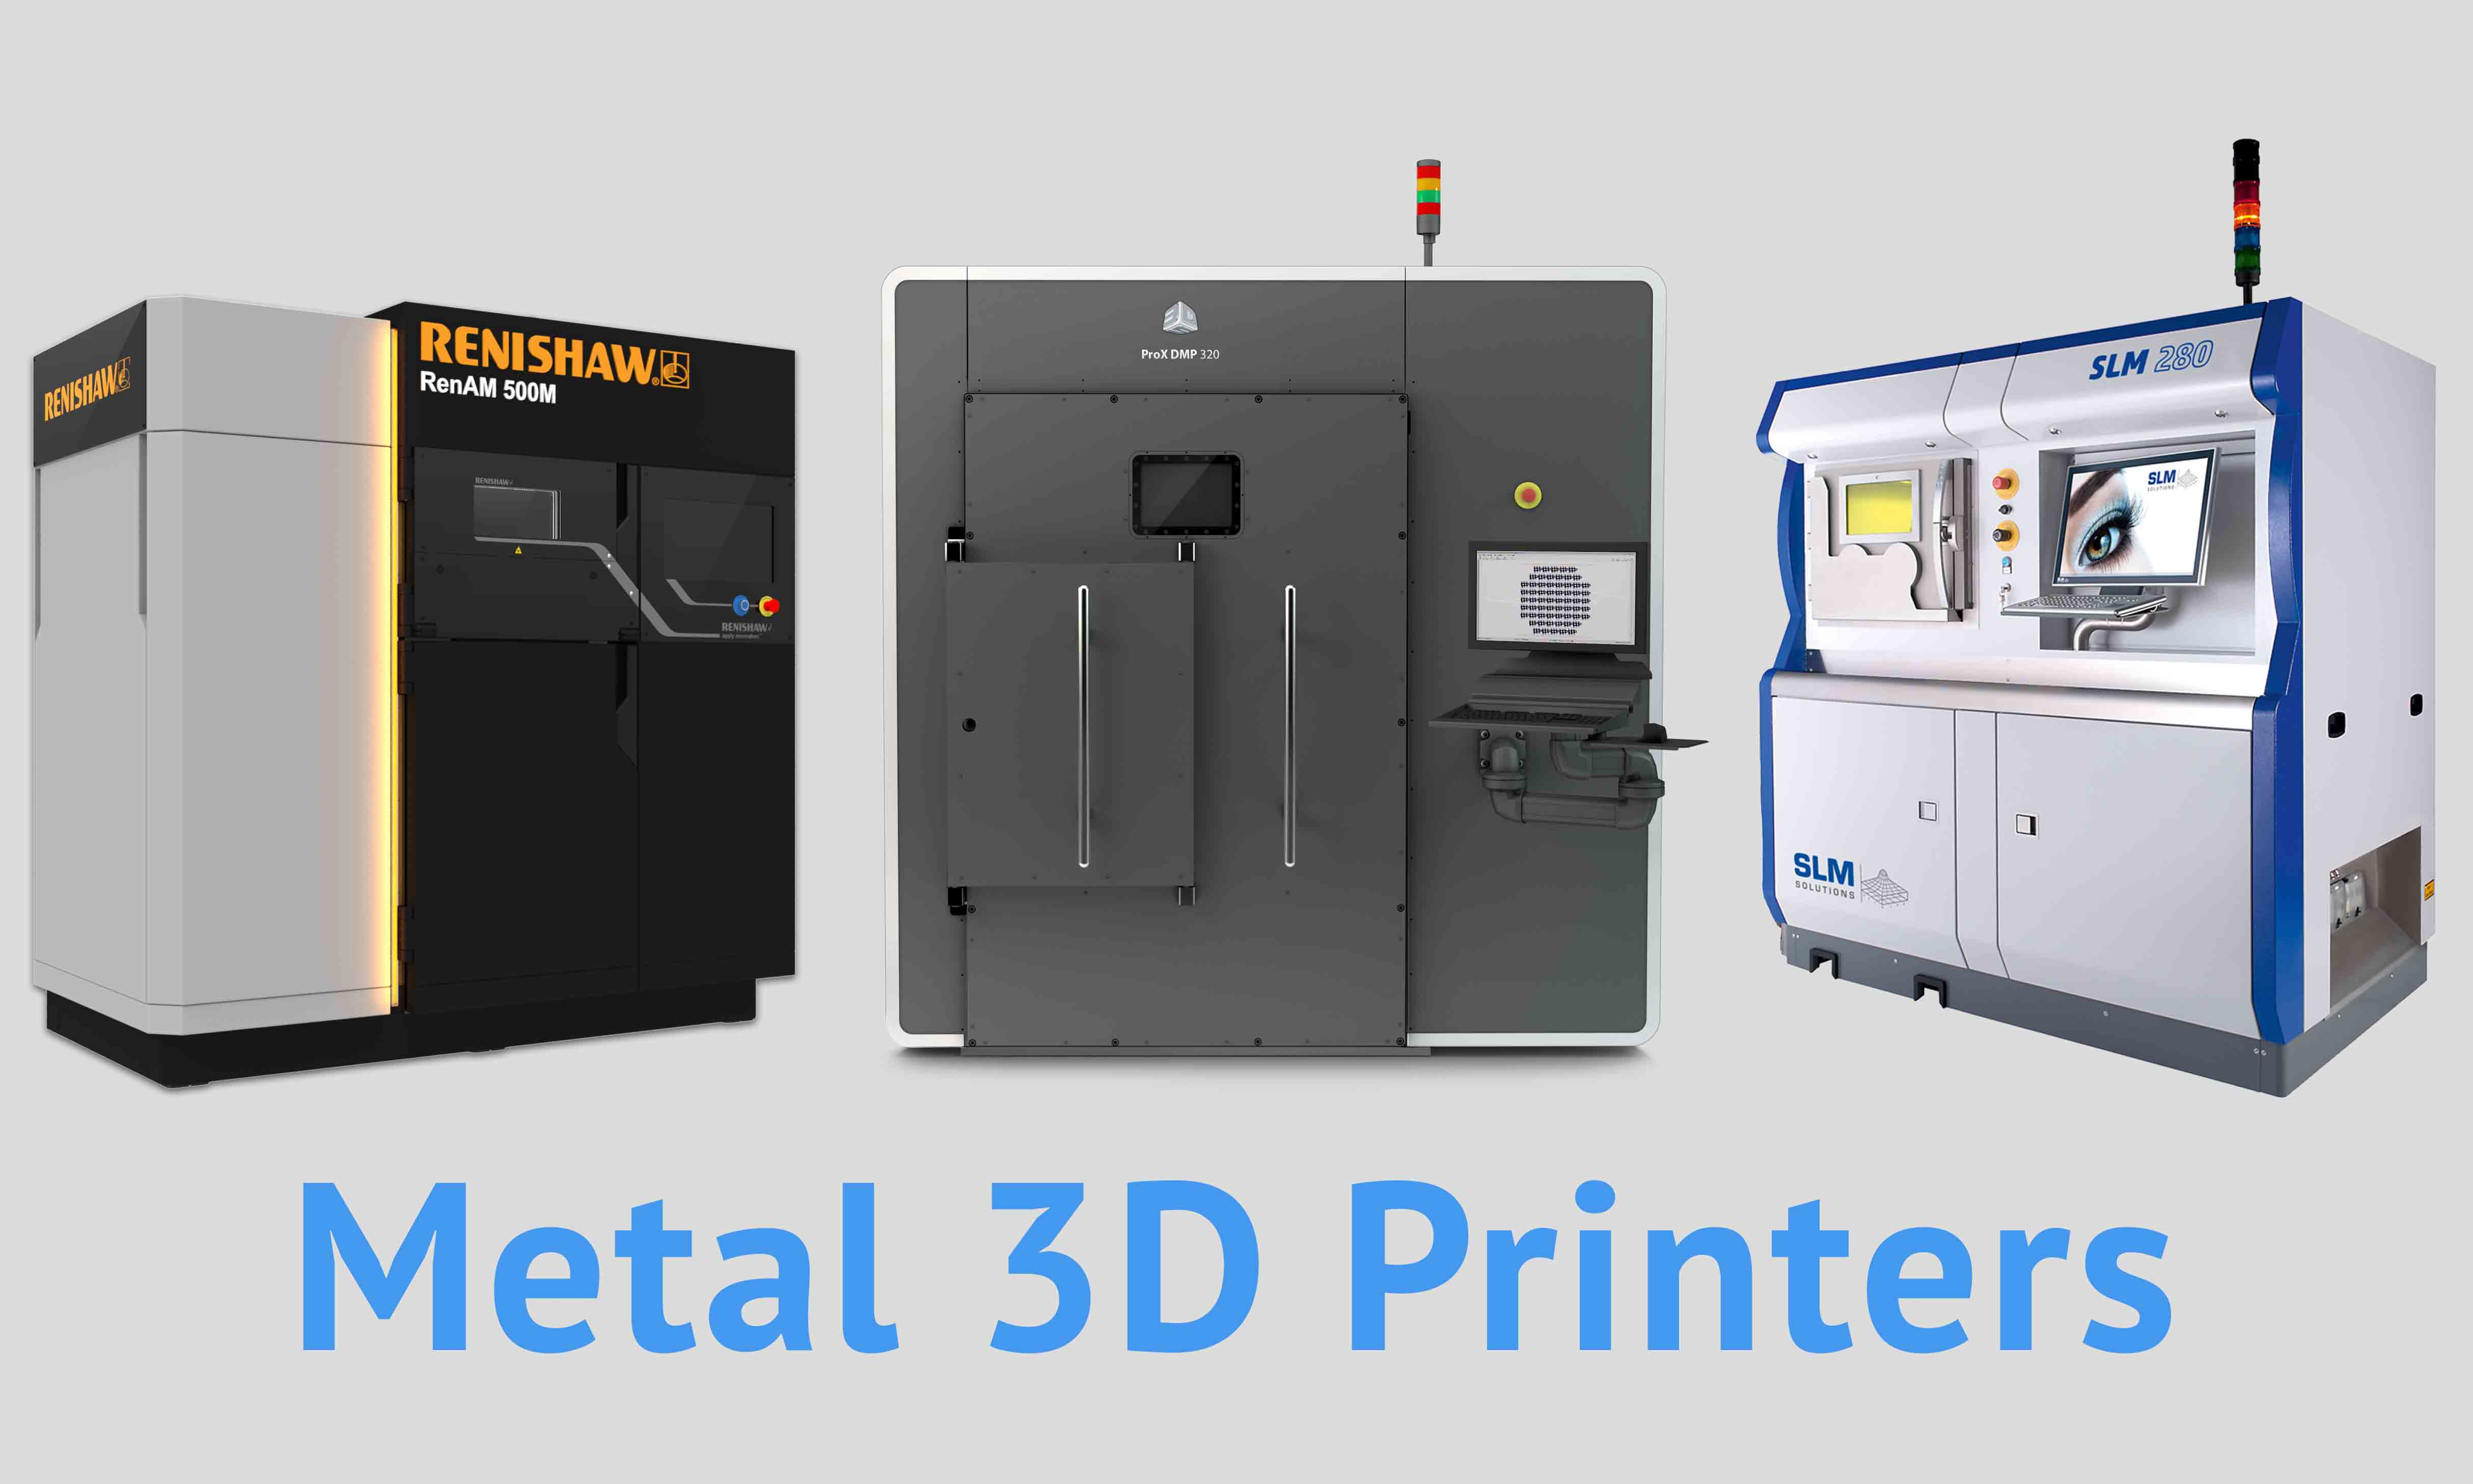 List of the main manufacturers and Metal 3D printers of 2017